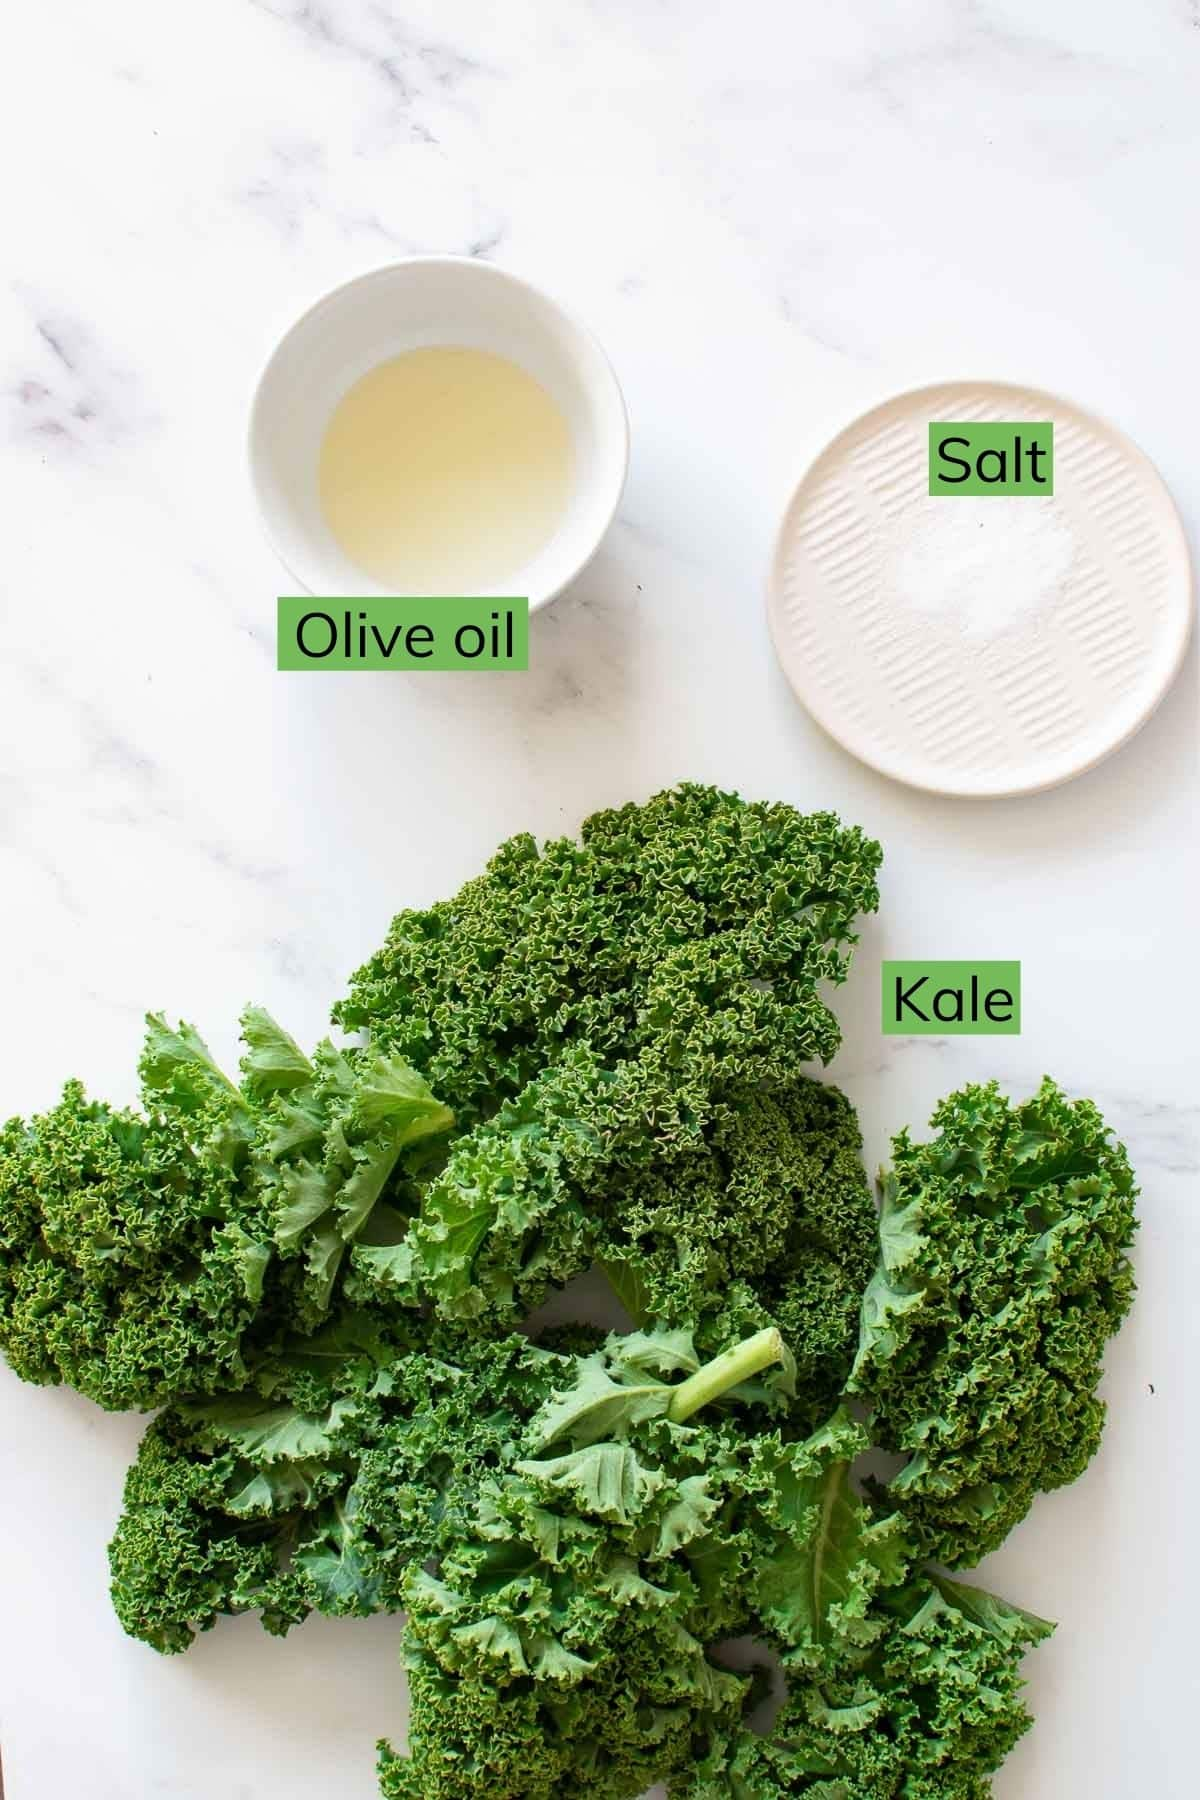 Olive oil, salt and kale on a table.